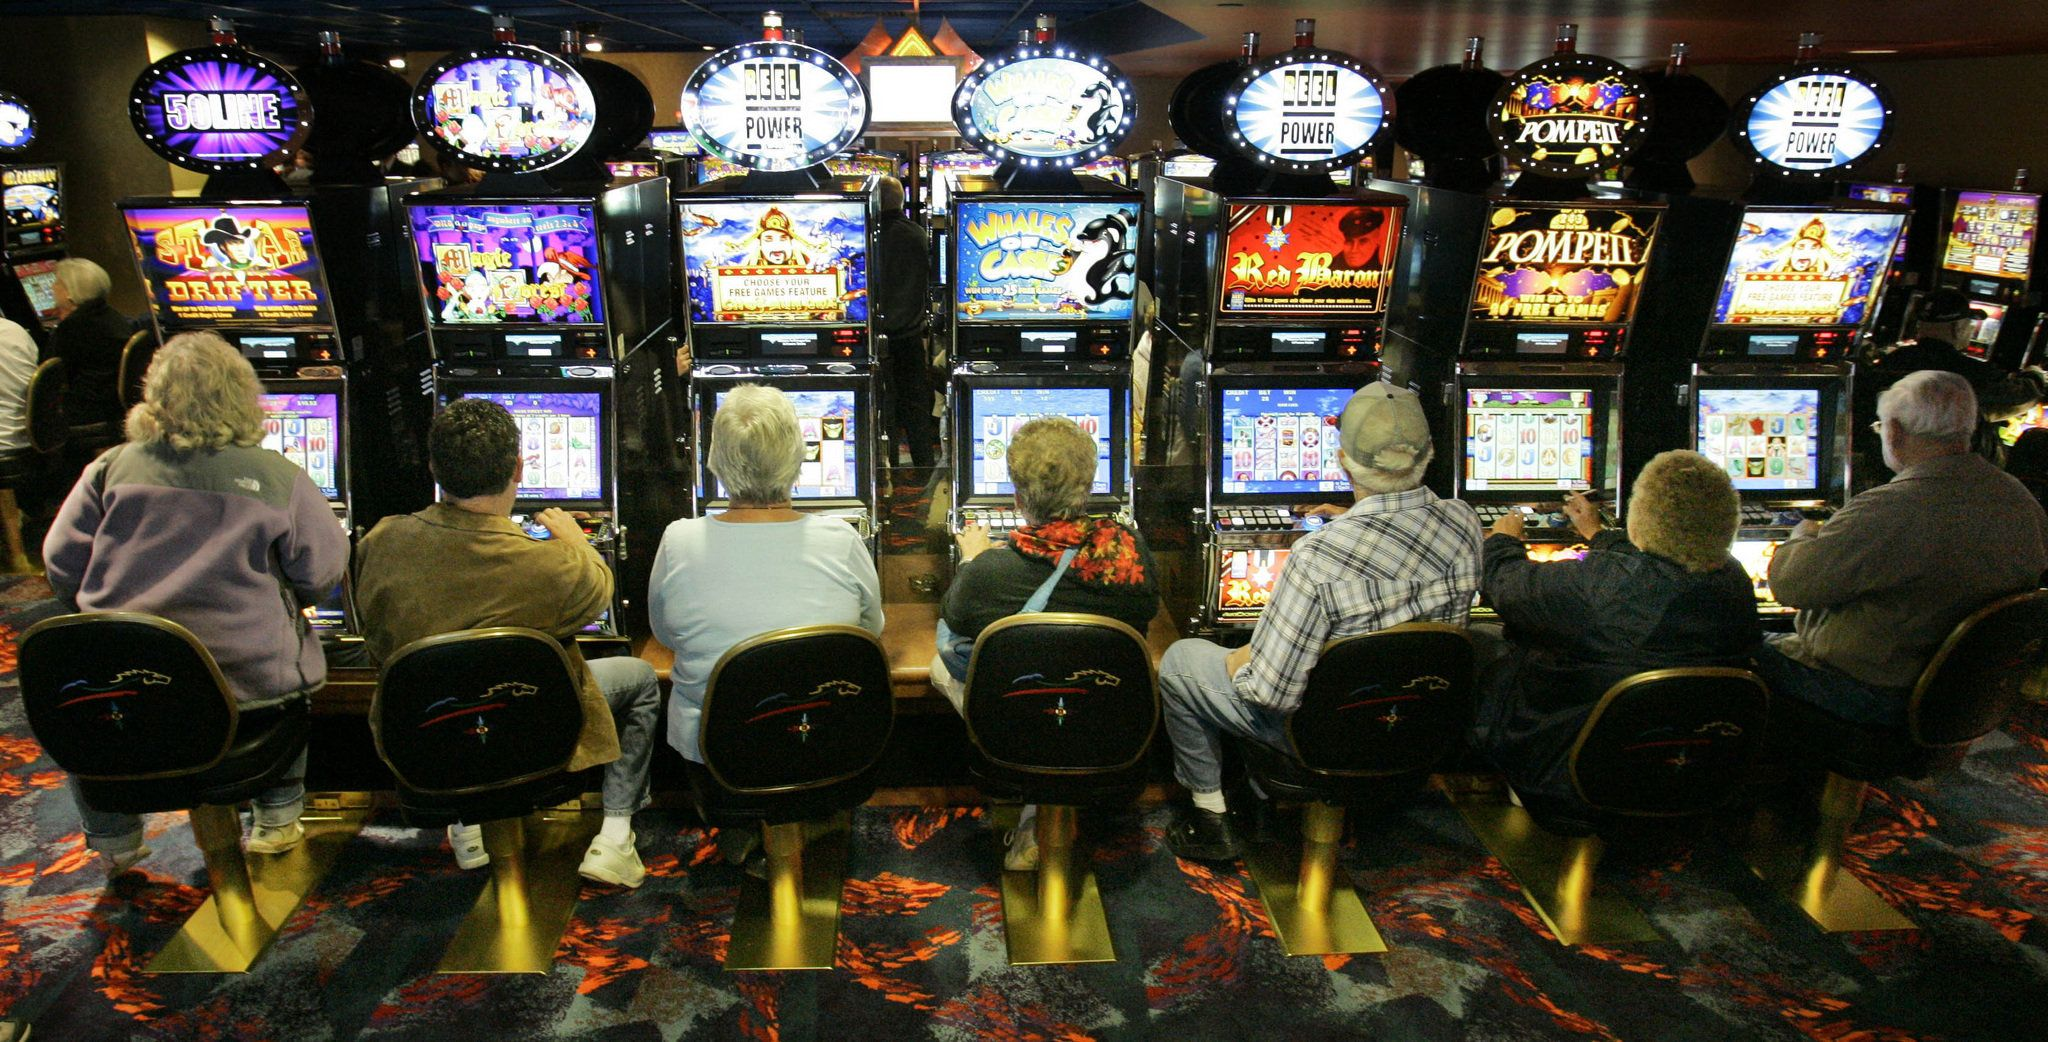 Life expectancy slot machines bank casino destination gaming grand online ultimate